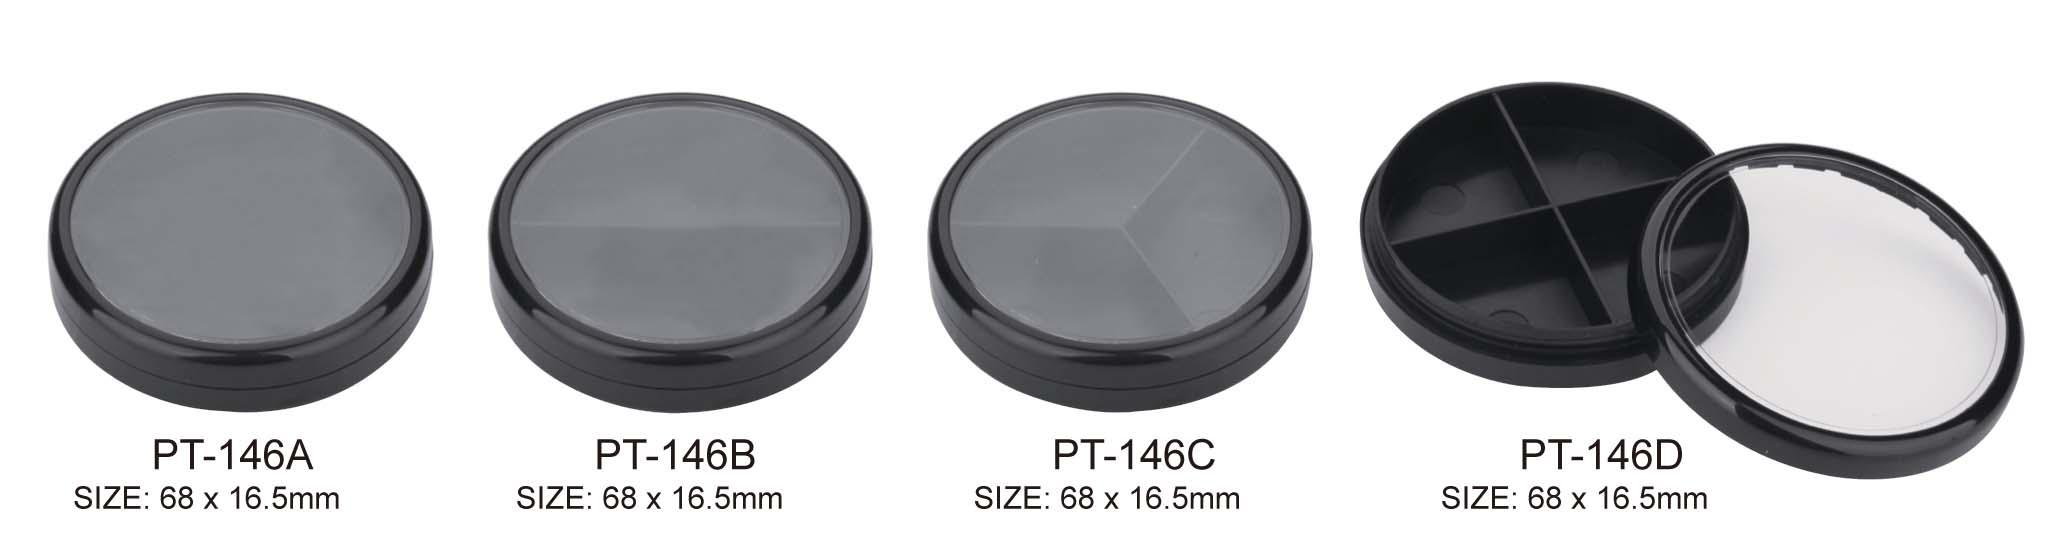 Plastic Round Cosmetic Compact